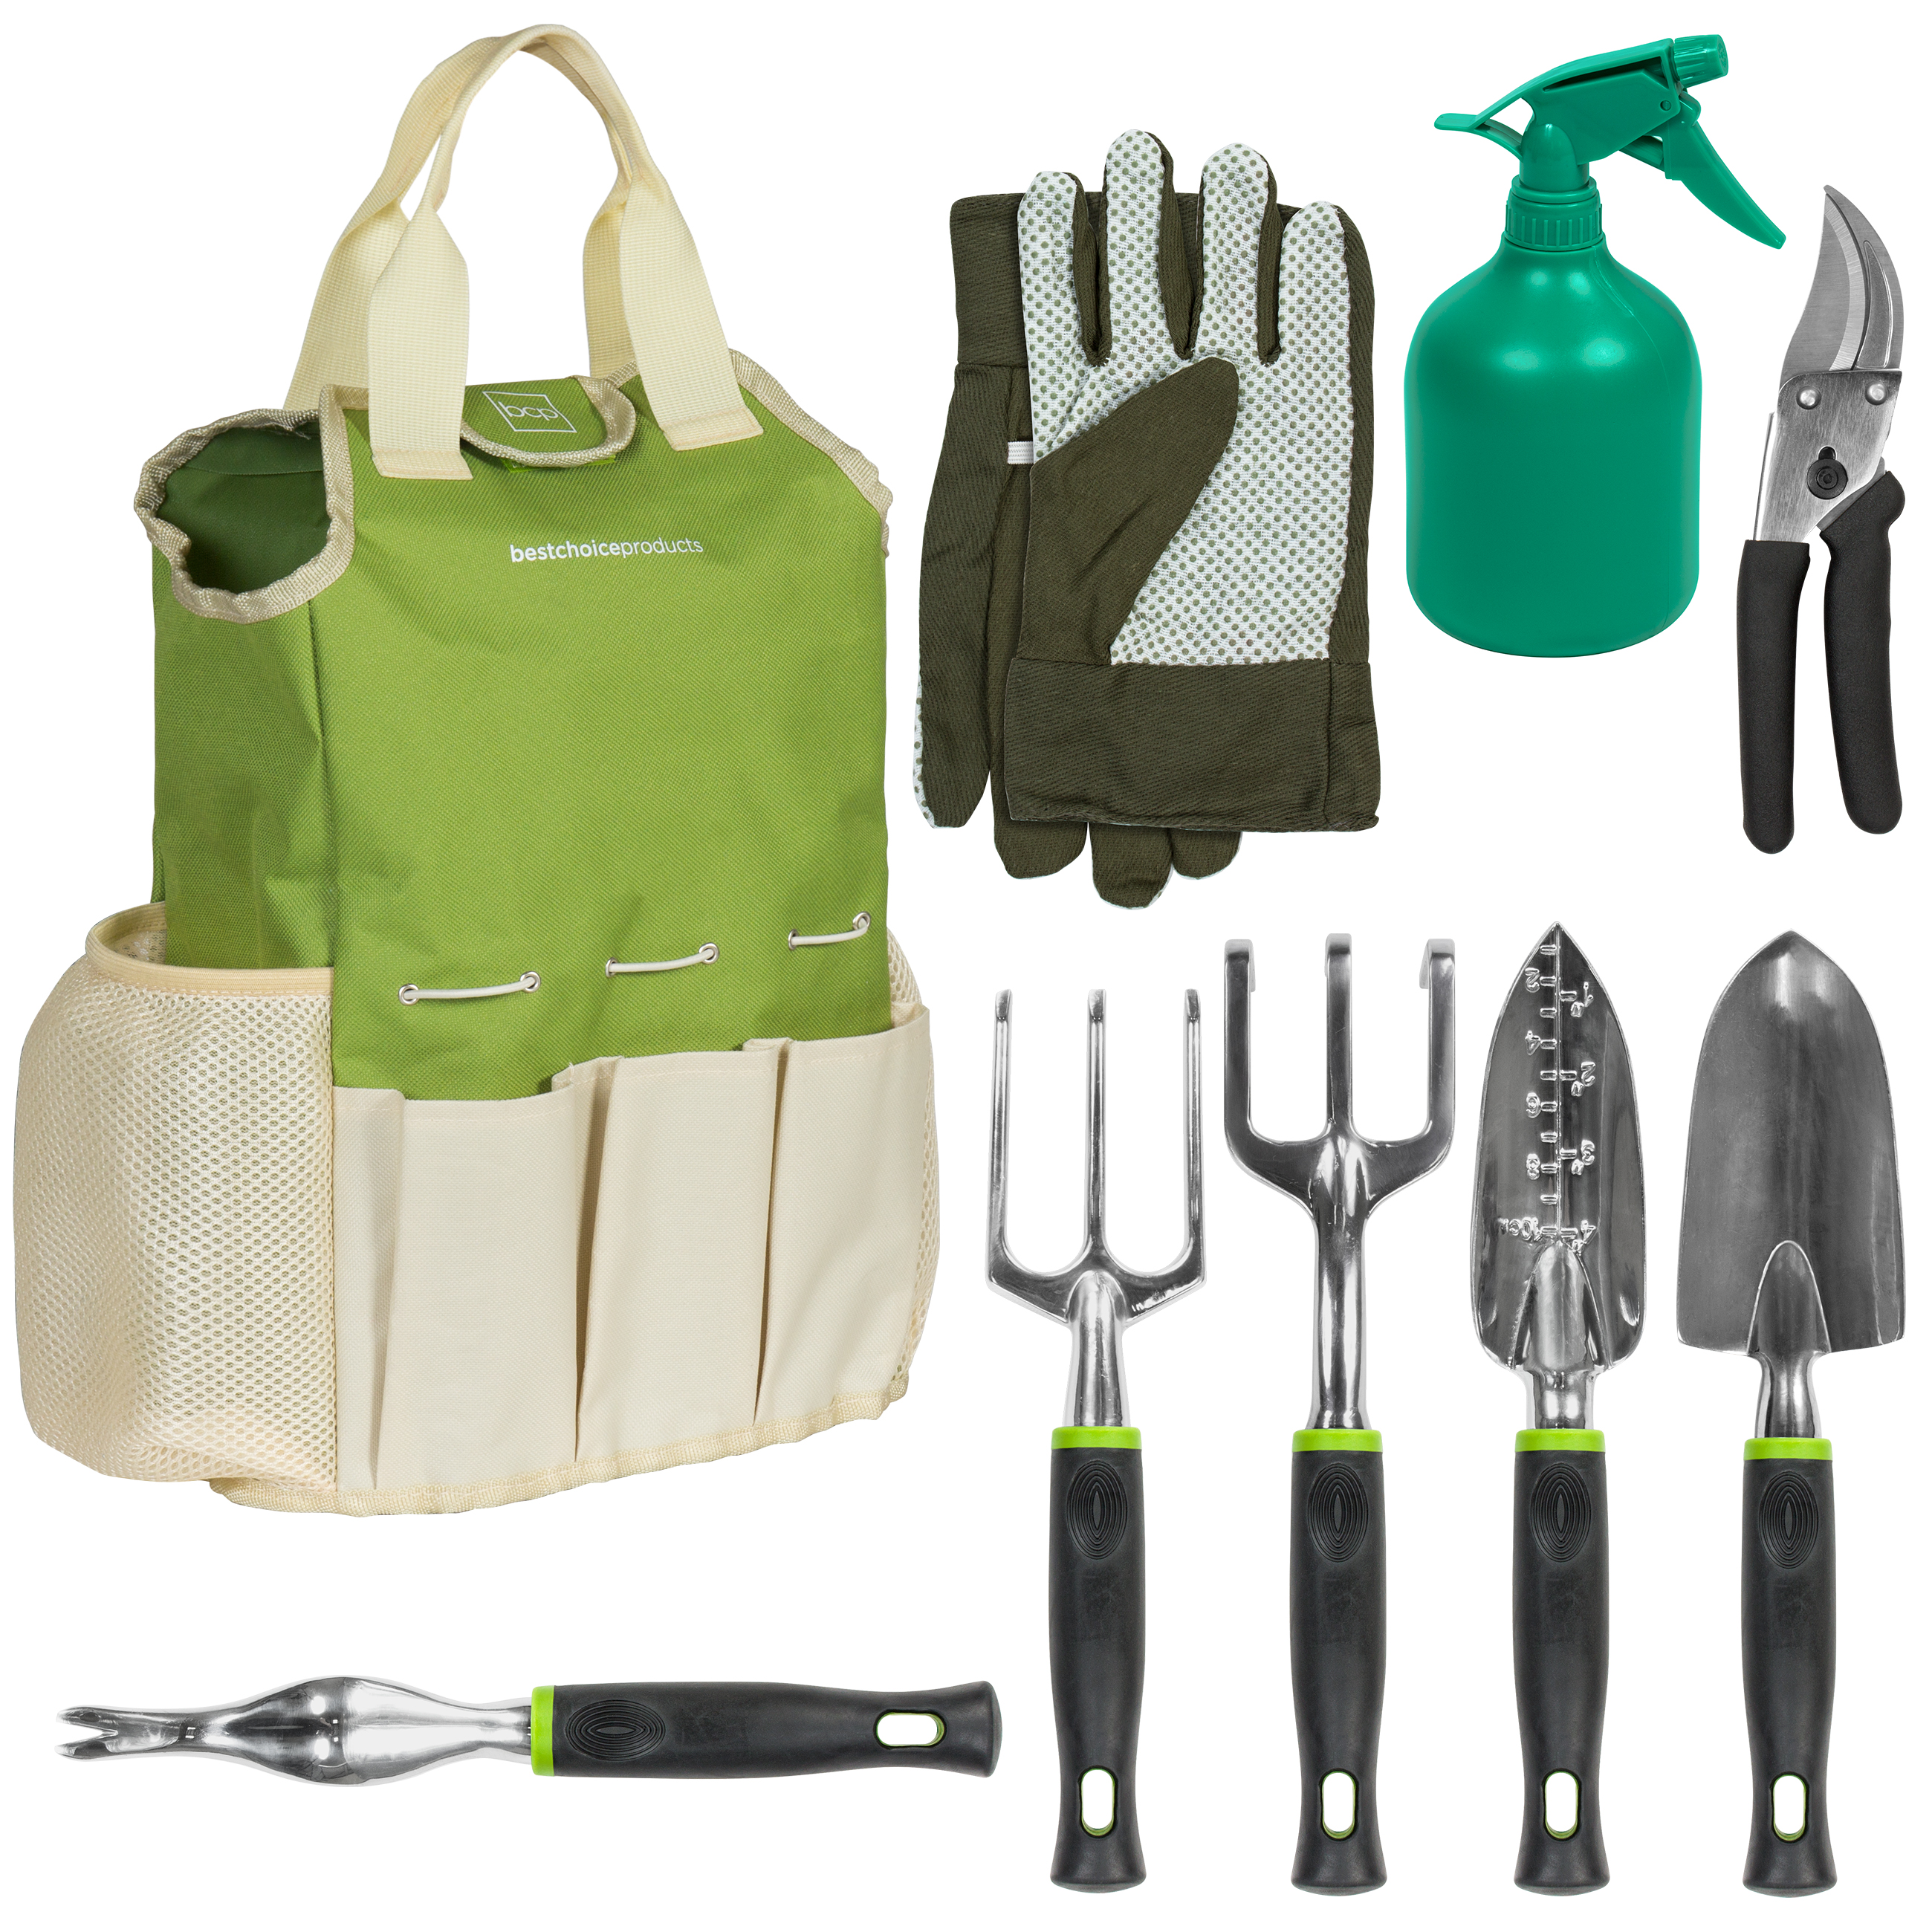 Best Choice Products 9-Piece Gardening Tool Set w  Hand Tools, Gloves, Carrying Tote Bag... by Best Choice Products